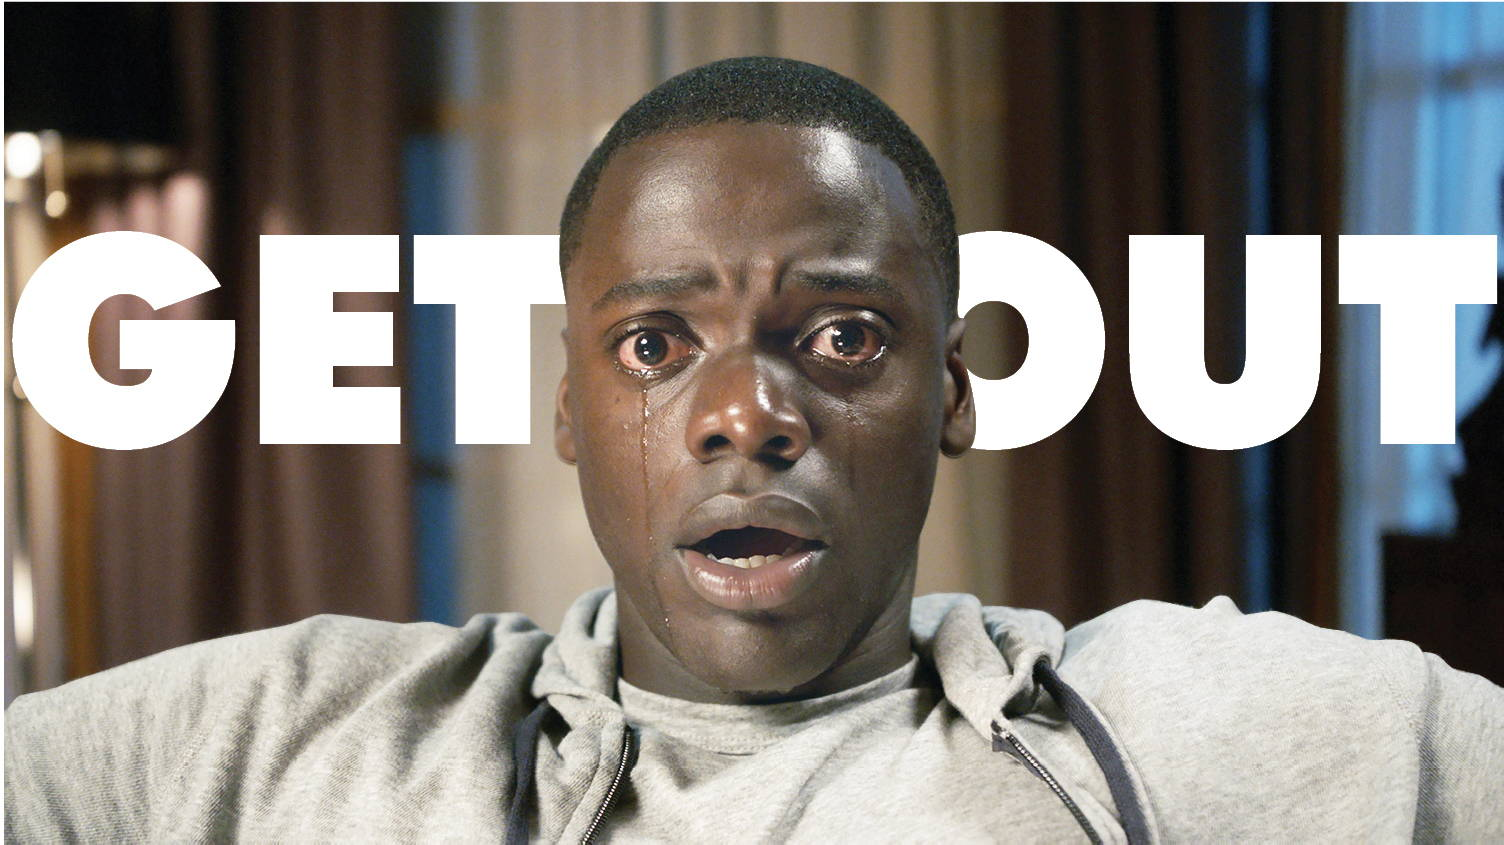 Get Out and Other Scary Movies to Watch this Halloween at DopeBoo.com